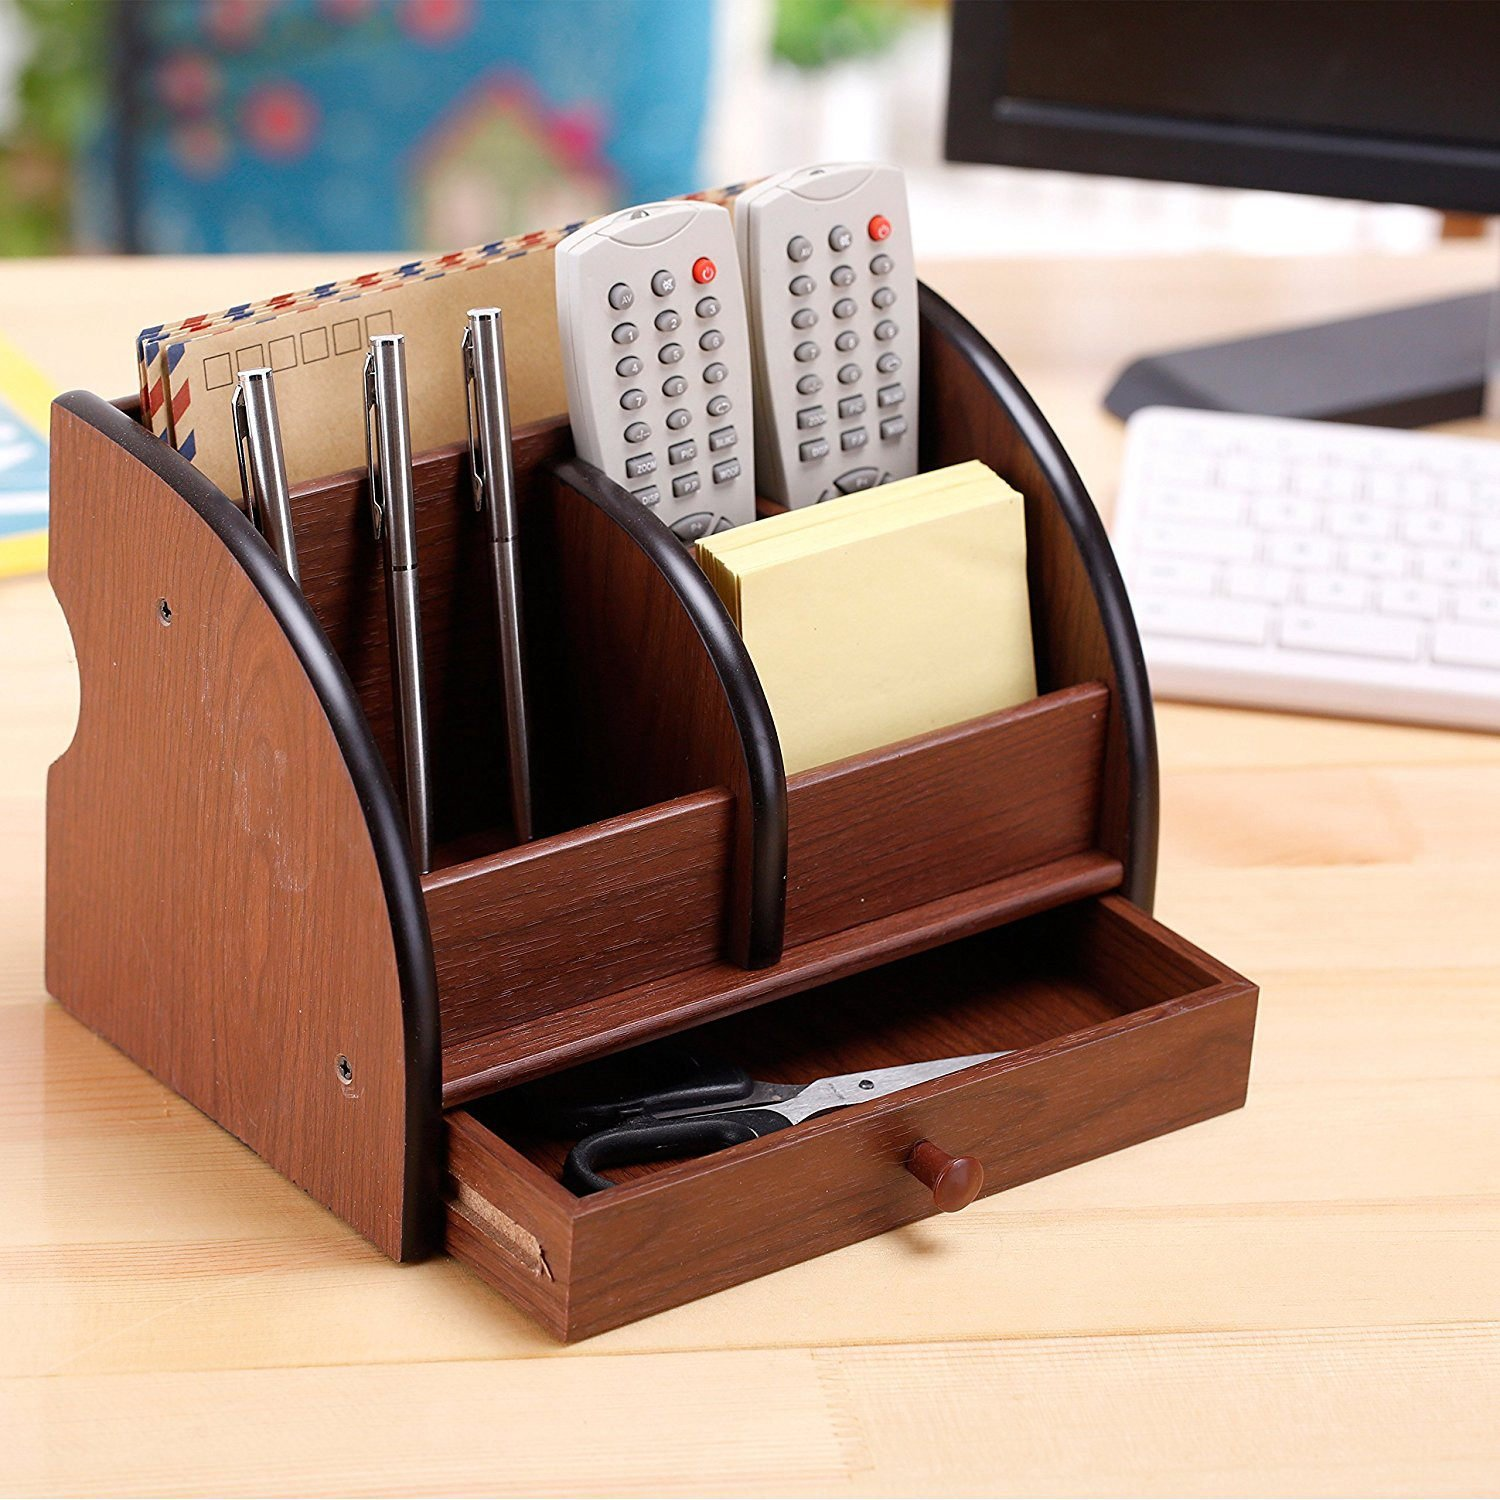 Nrpfell 5-Compartment Luxury Brown Wood Office Desktop Organizer/Letter Sorter with Drawer by Nrpfell (Image #4)